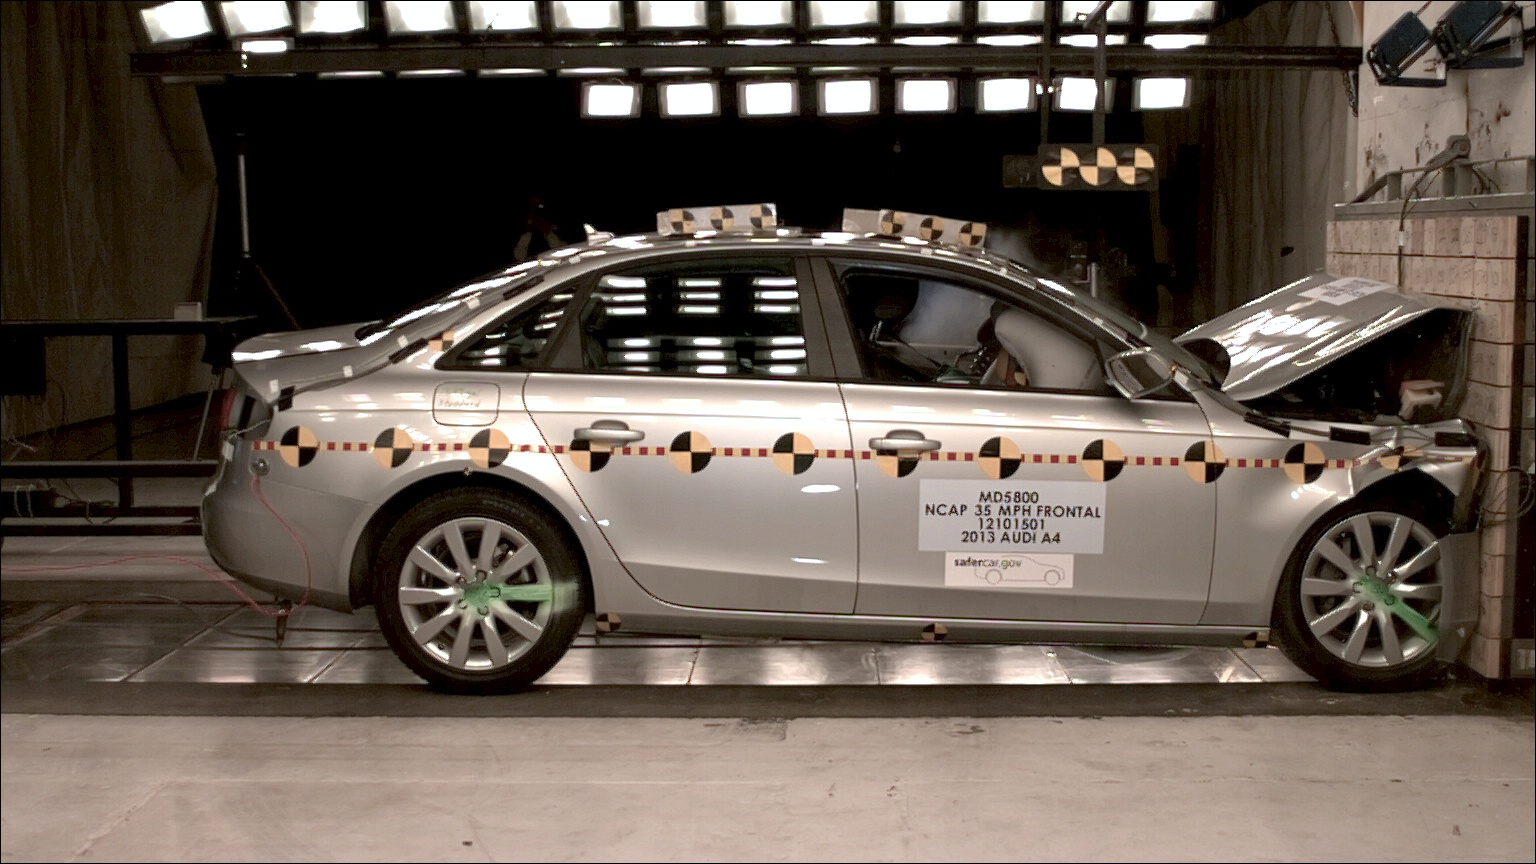 NCAP 2014 Audi A4 front crash test photo